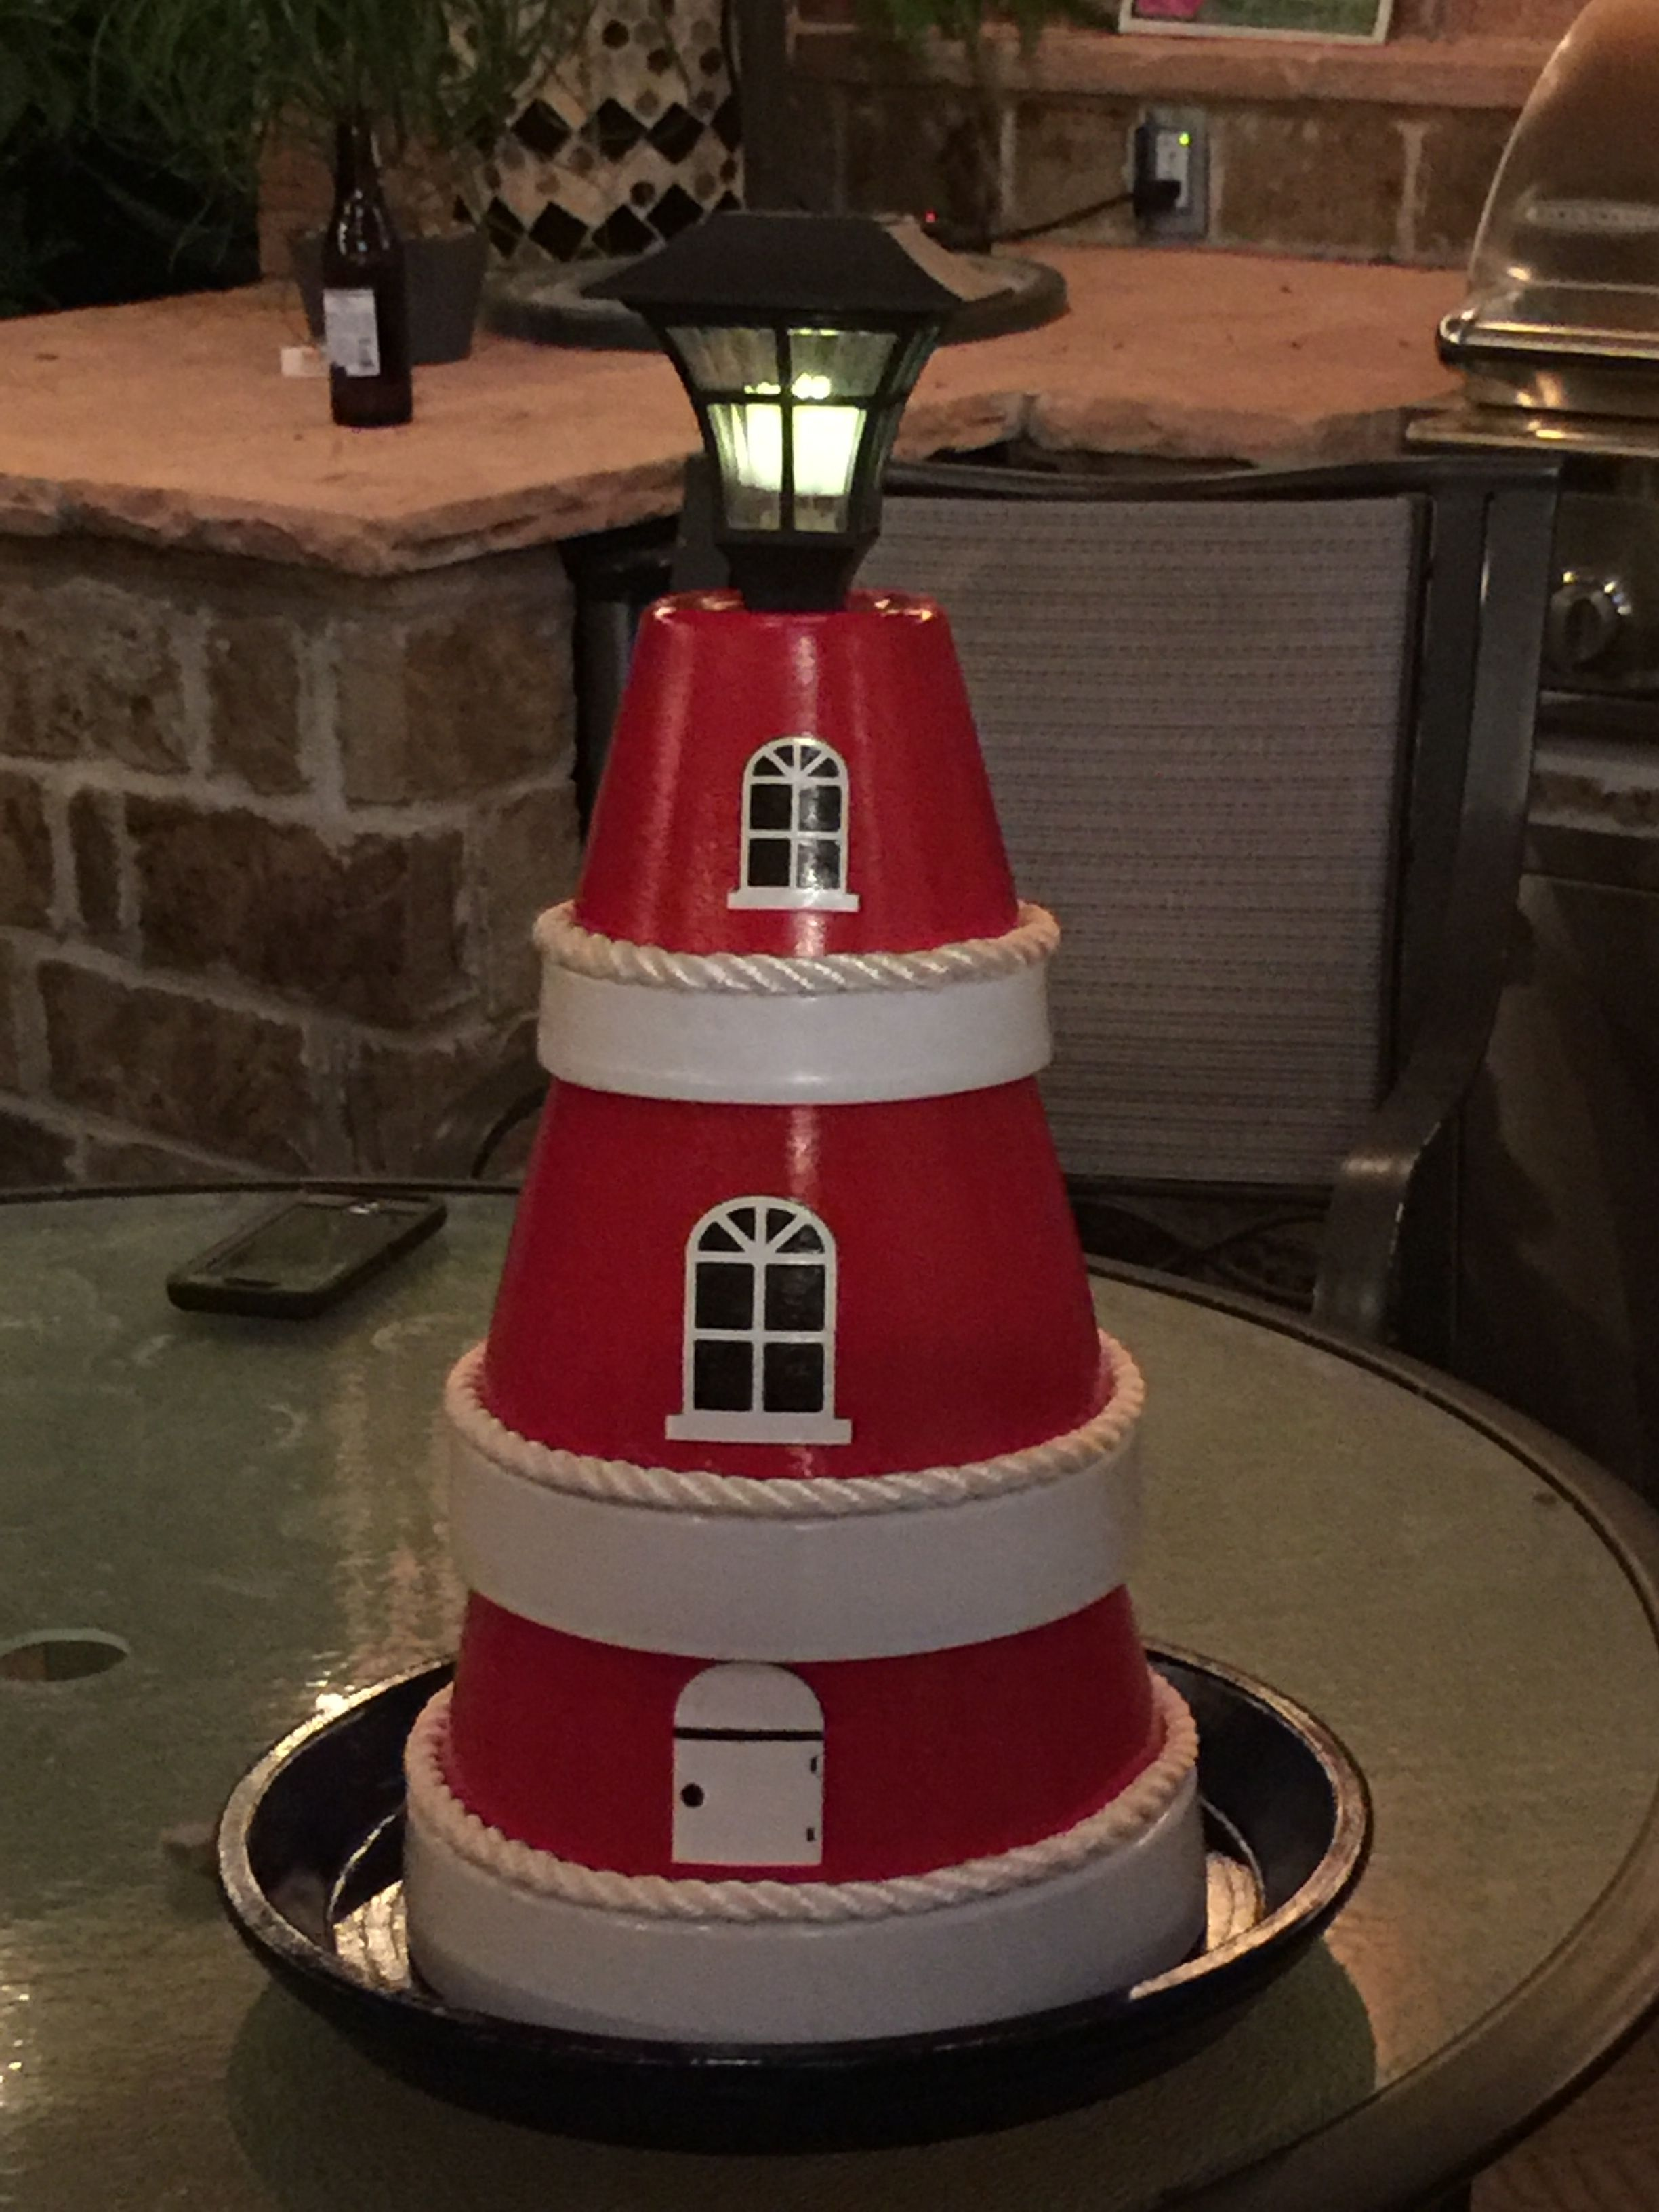 Lighthouse made from terra cotta planters | Terracotta ... on lighthouse statues, lighthouse art, lighthouse pots, lighthouse garden, lighthouse gifts, lighthouse sheds, lighthouse home, lighthouse sculptures, lighthouse pottery, lighthouse urns, lighthouse craft projects, lighthouse jewelry, lighthouse lighting, lighthouse flags, lighthouse books, lighthouse fountains, lighthouse plates, lighthouse candles, lighthouse furniture, lighthouse birdhouses,